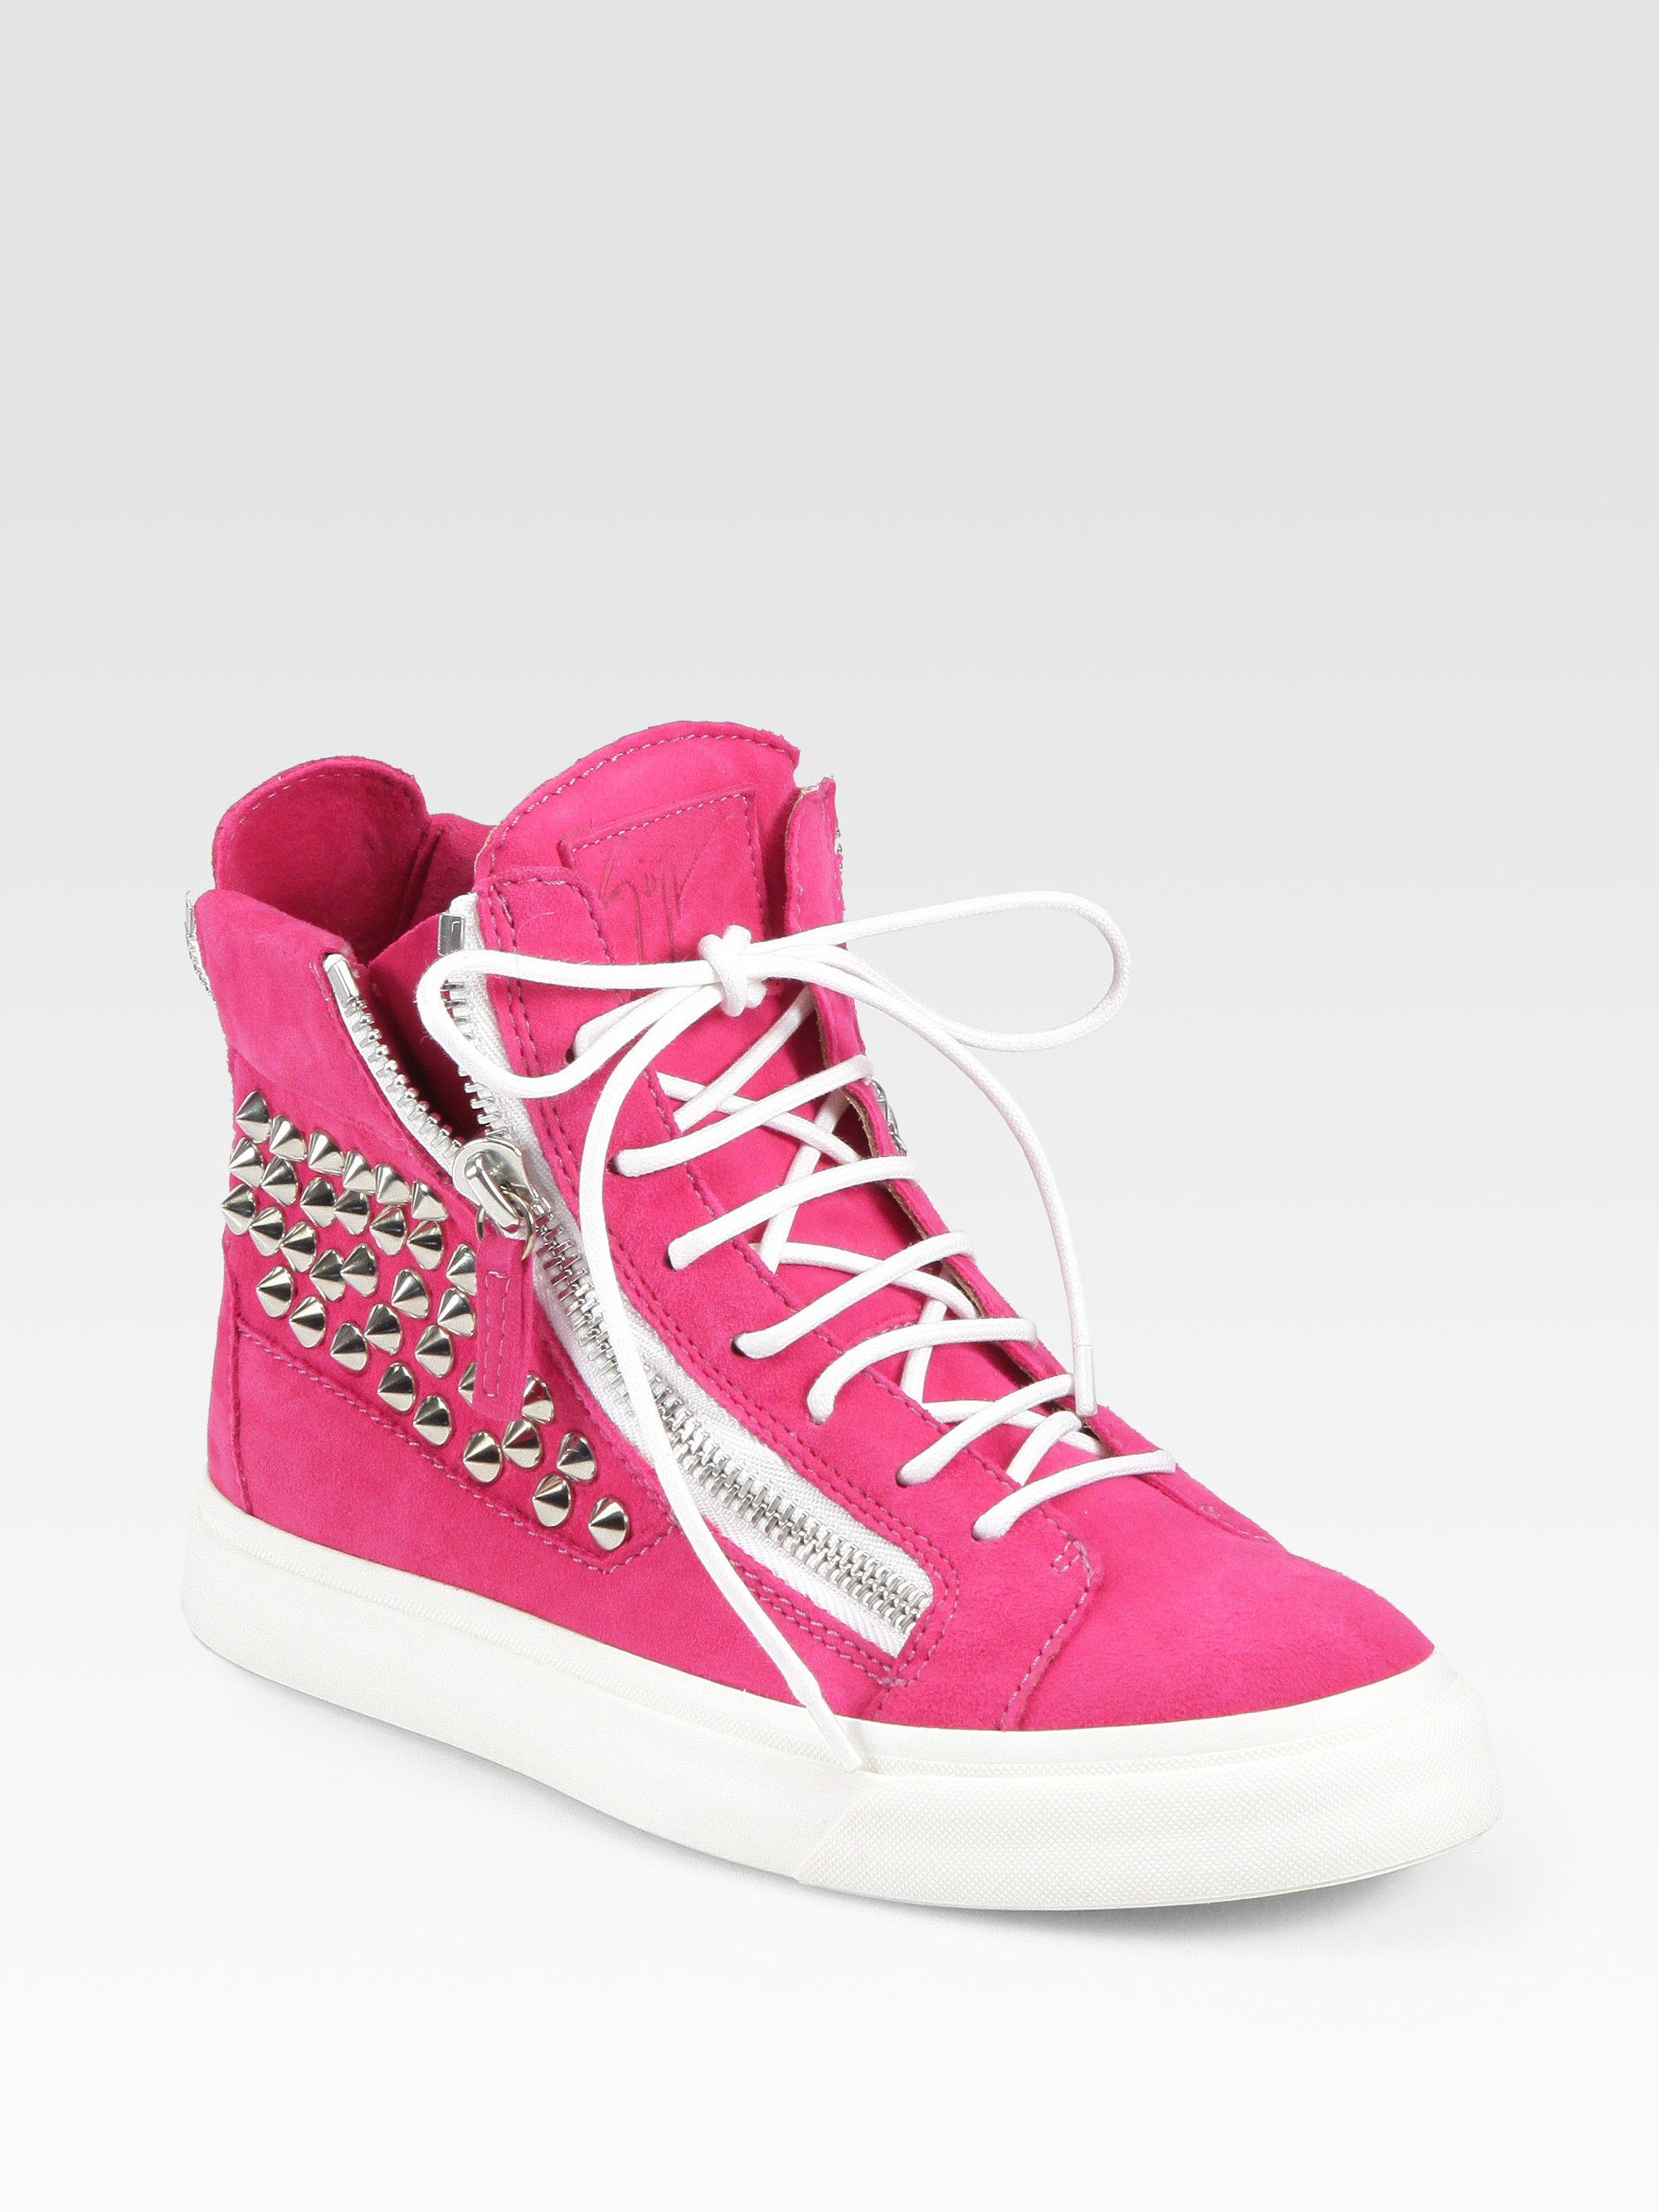 Giuseppe zanotti Studded Suede Wedge Sneakers in Pink | Lyst